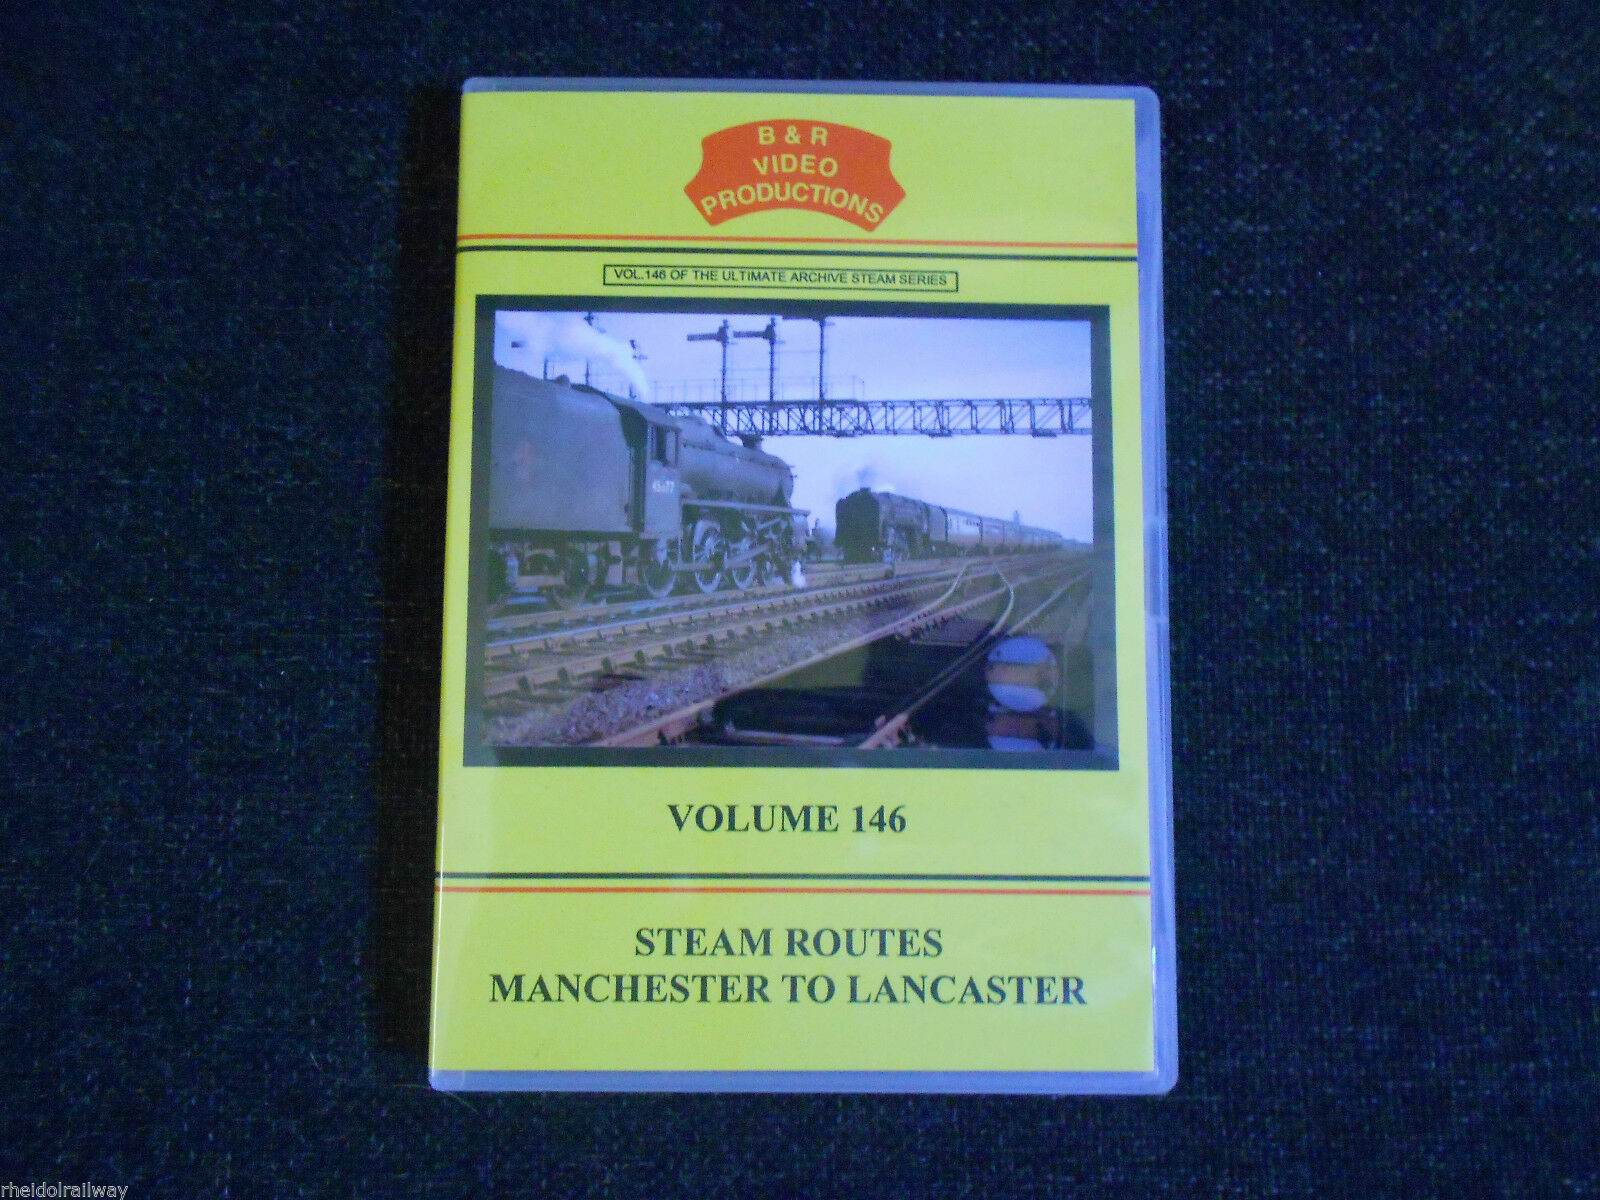 Warrington, Wigan, Barton, Steam Routes, Manchester To Lancaster B&R Vol 146 DVD